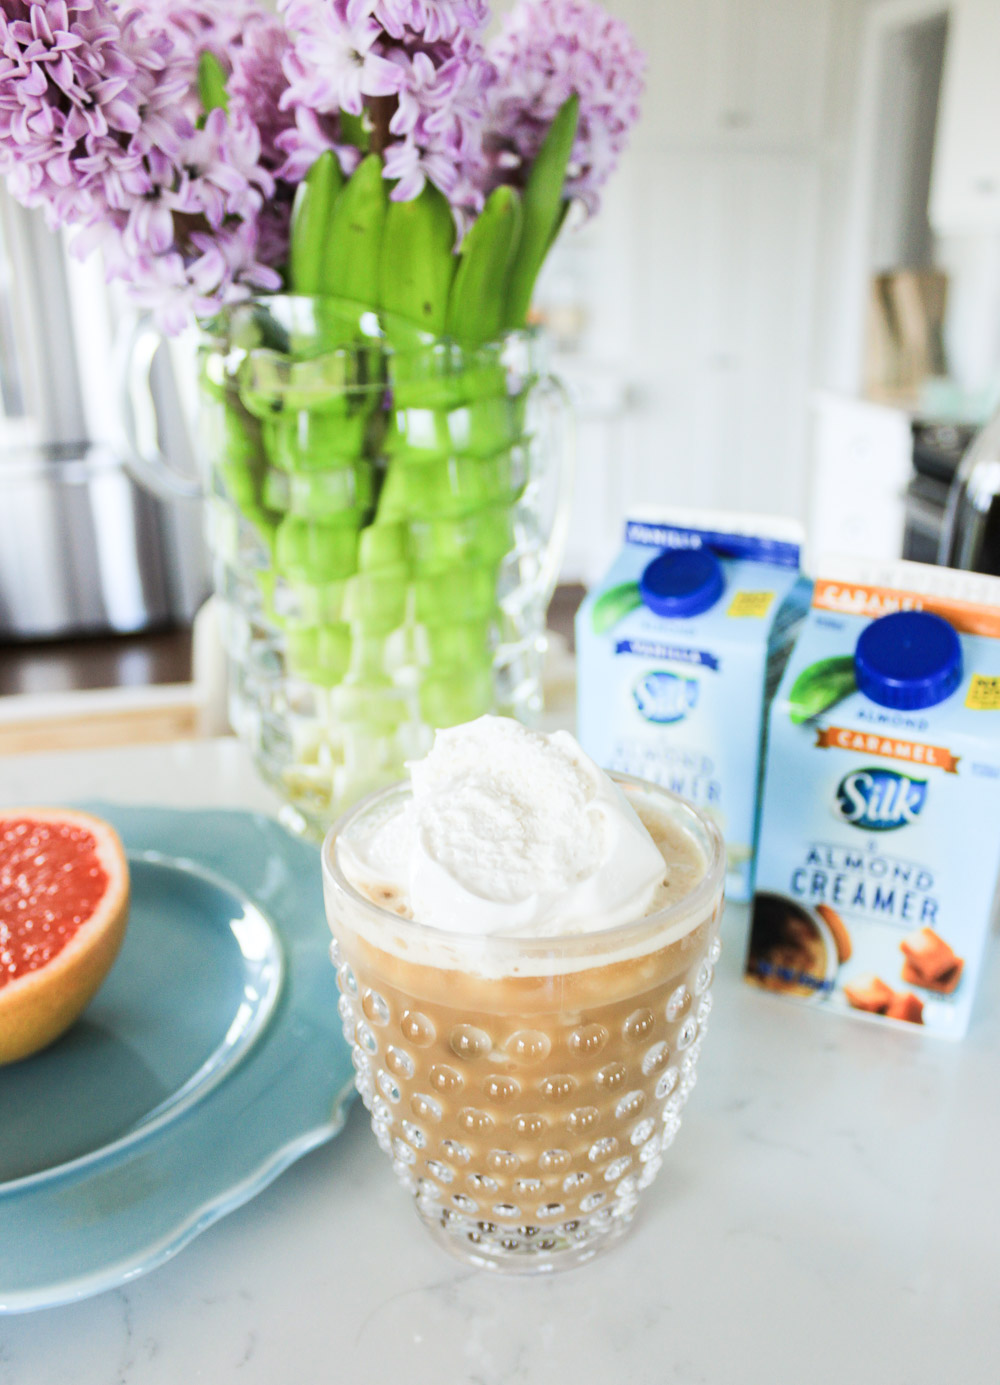 Dairy Free Frappuccino with Silk Almond Creamer